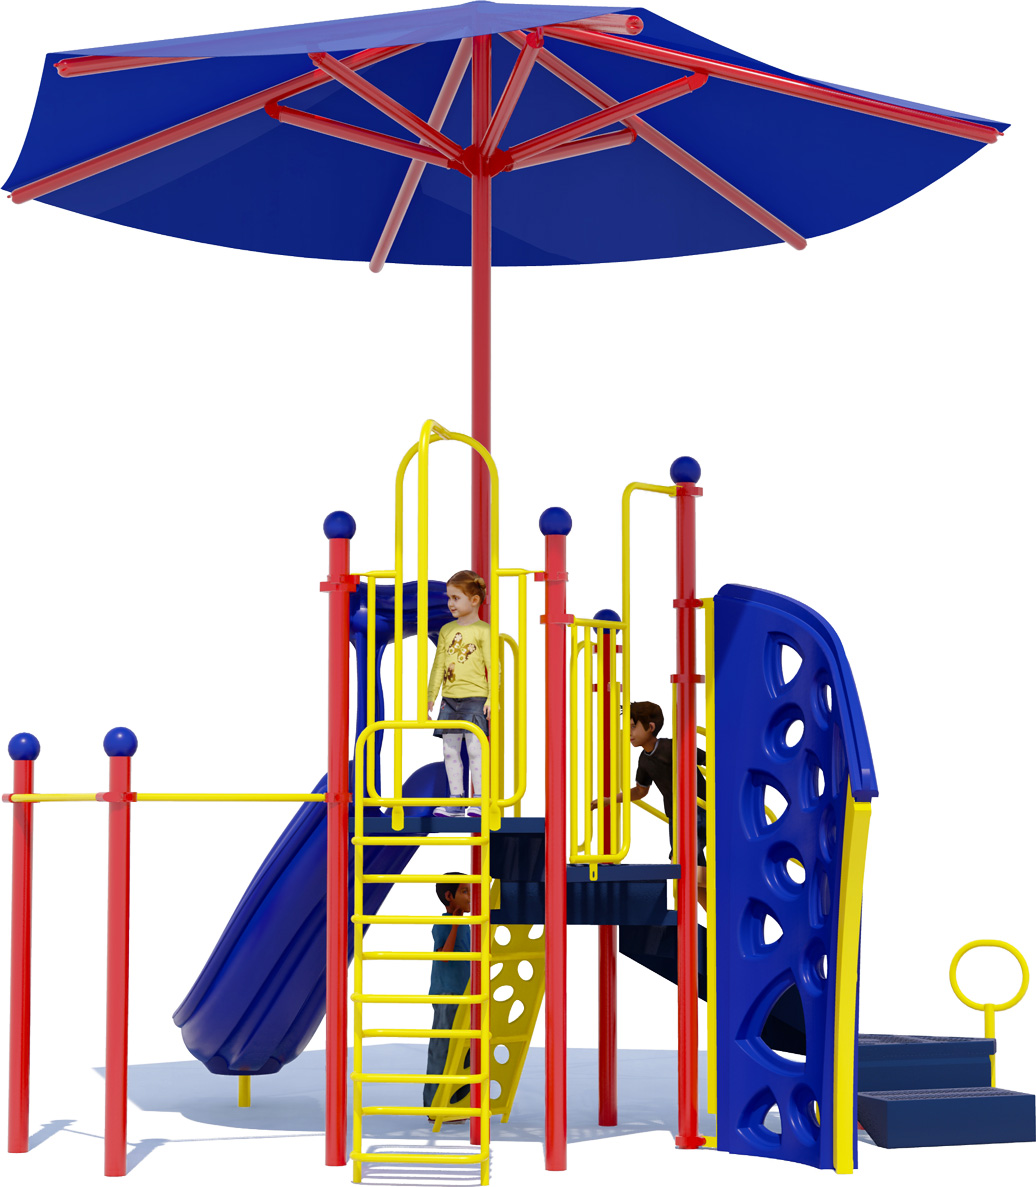 Kool Kids - Commercial Playground Equipment